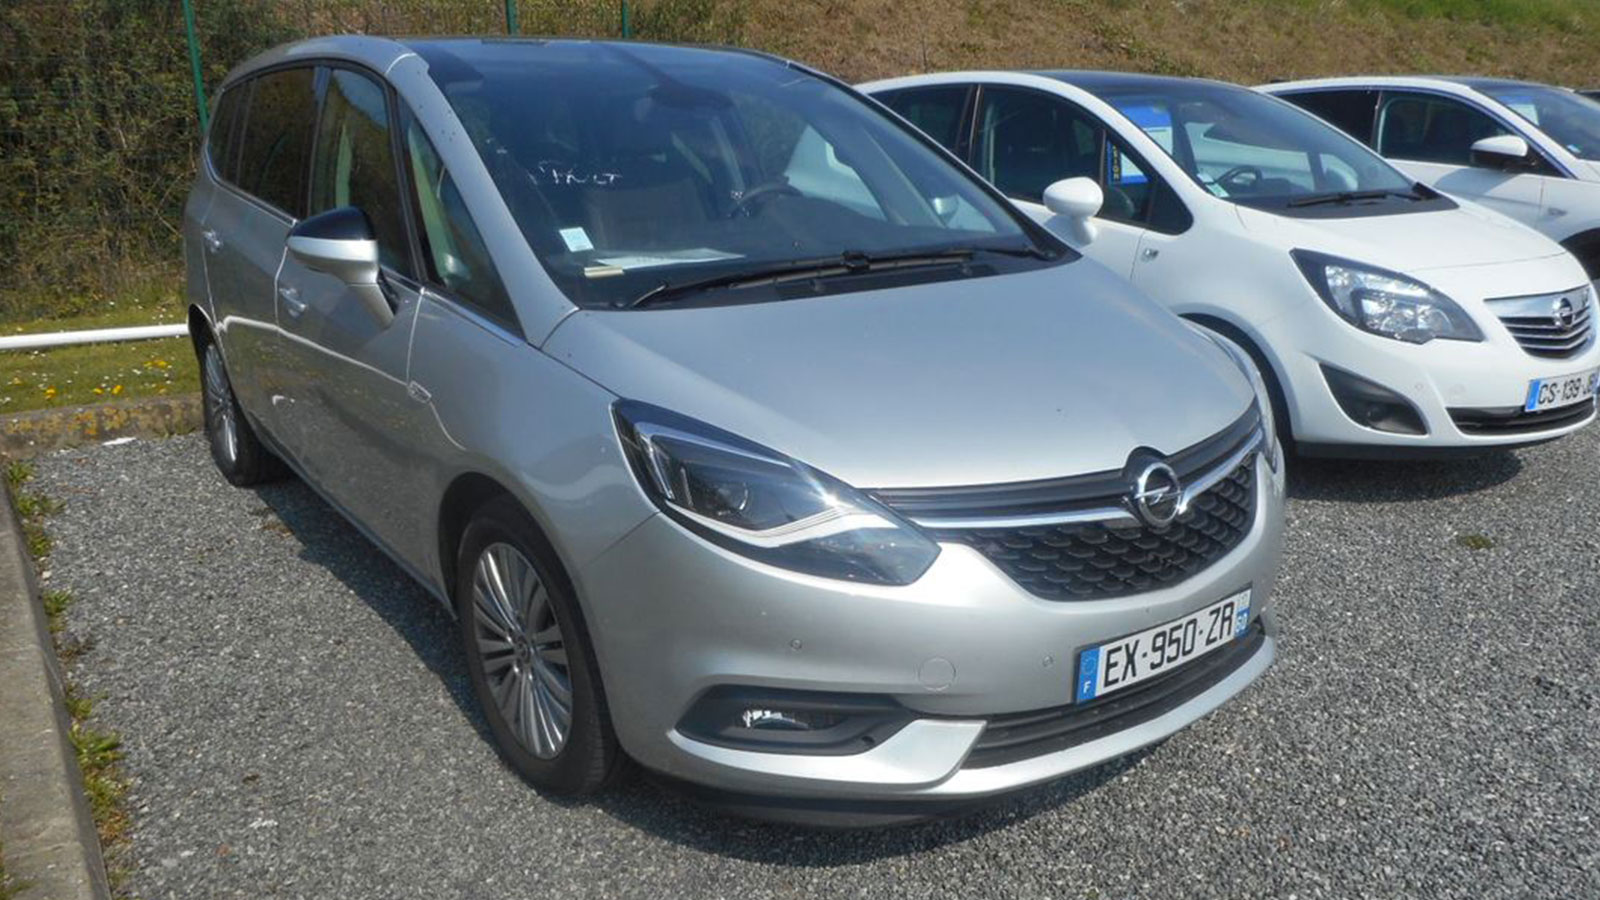 OPEL ZAFIRA ELITE 1.4 TURBO ESS 140CH 7PLACES